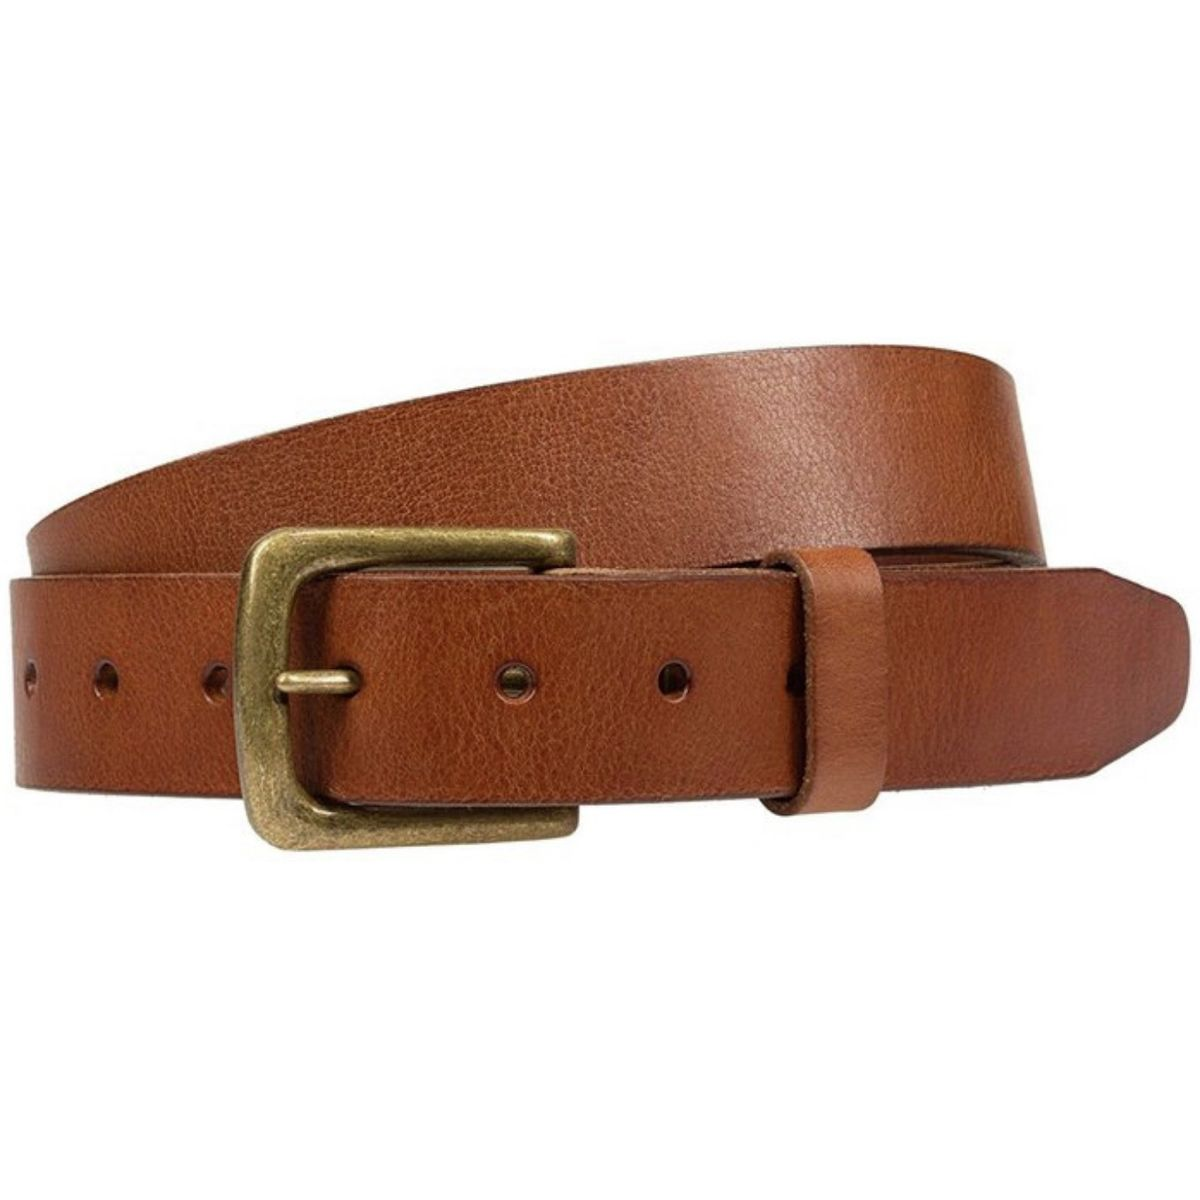 Will Leather Goods Luxe Belt